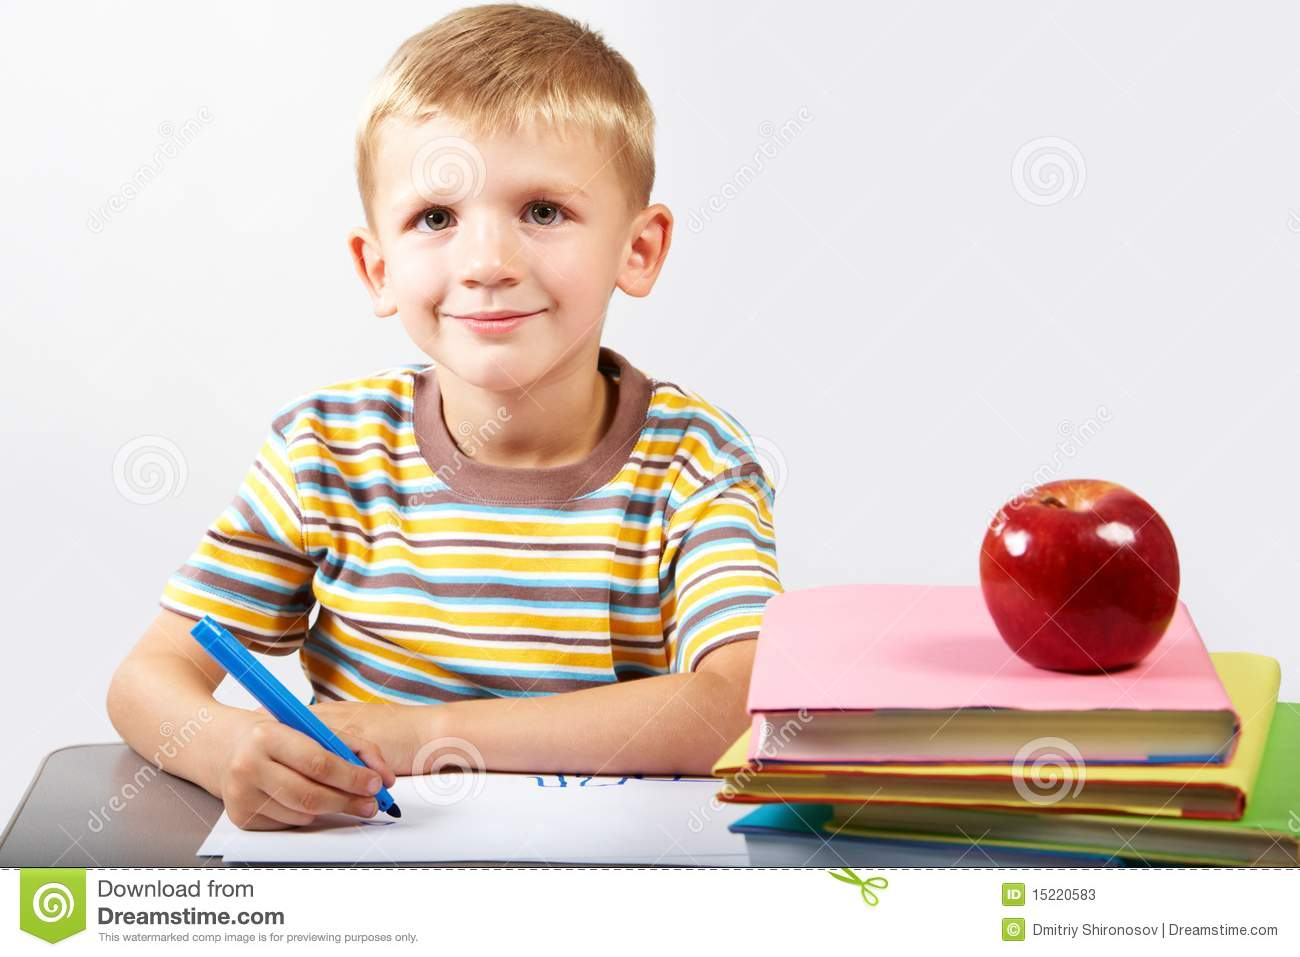 Diligent schoolboy looking at camera during drawing.